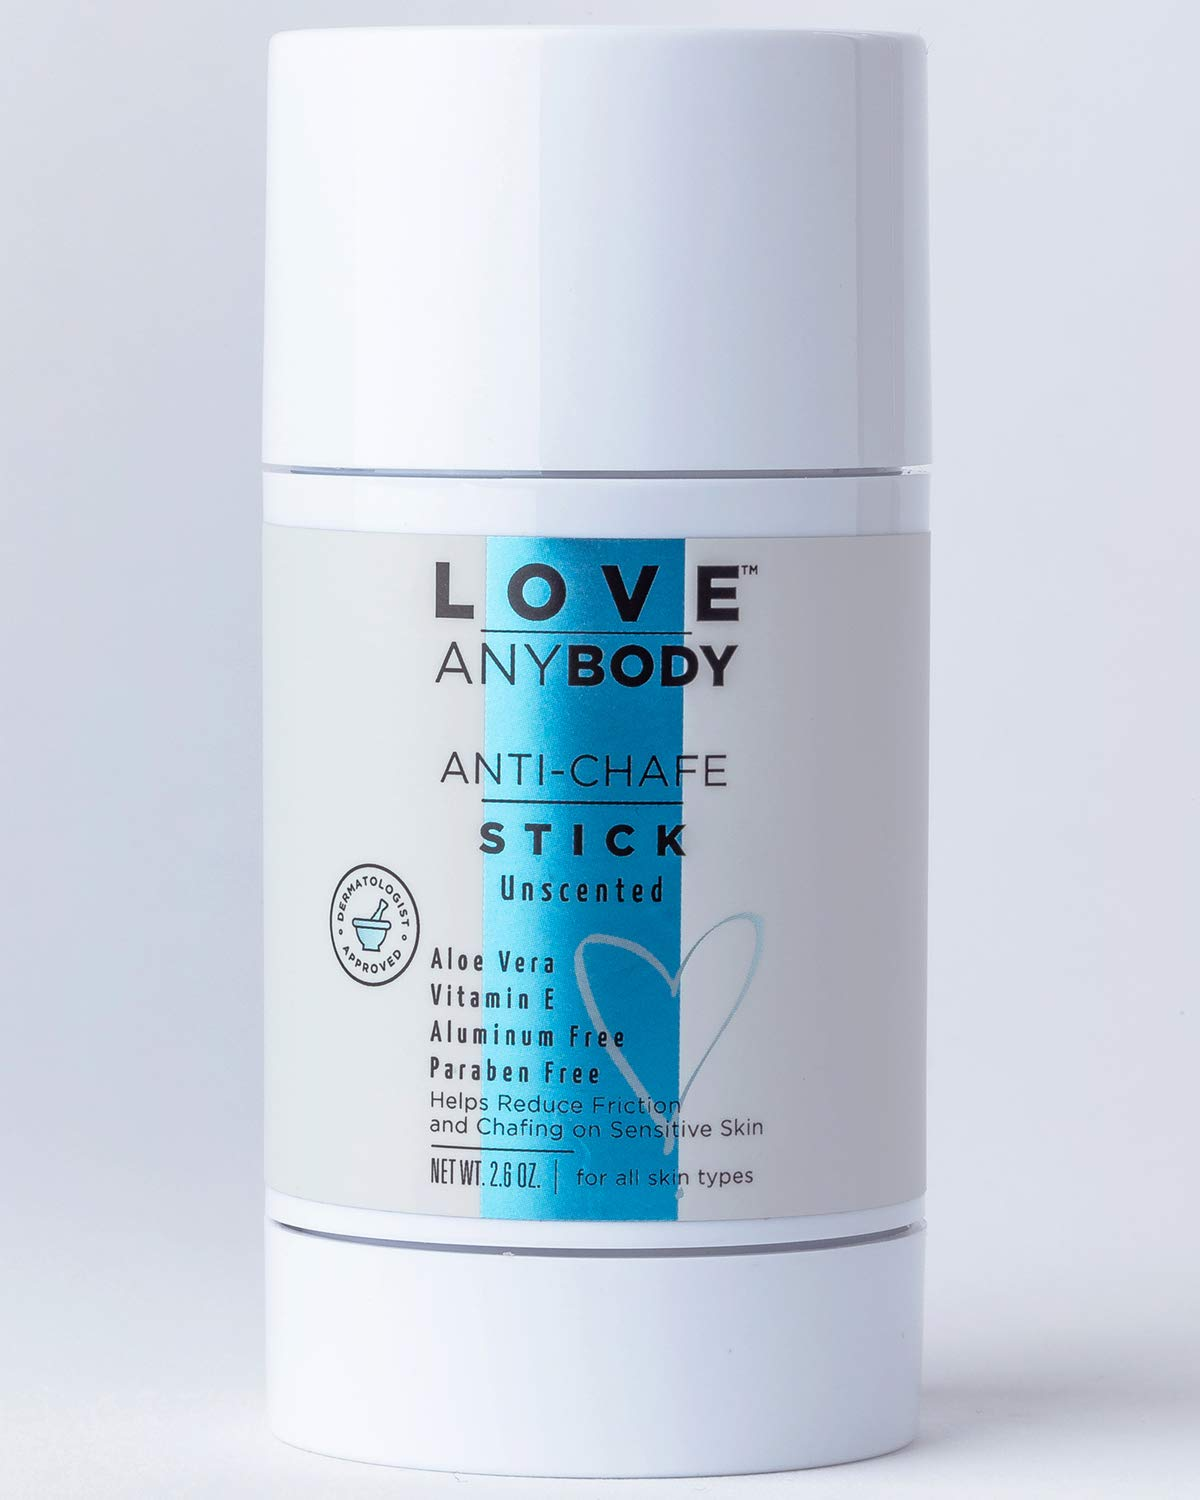 Love AnyBody Anti-Chafe Stick | Dermatologist Approved | Natural Unscented | Aluminum Free, Paraben Free, Phthalate Free, Cruelty Free | Skin Protectant Combats Friction for Inner Thighs | Aloe Vera,